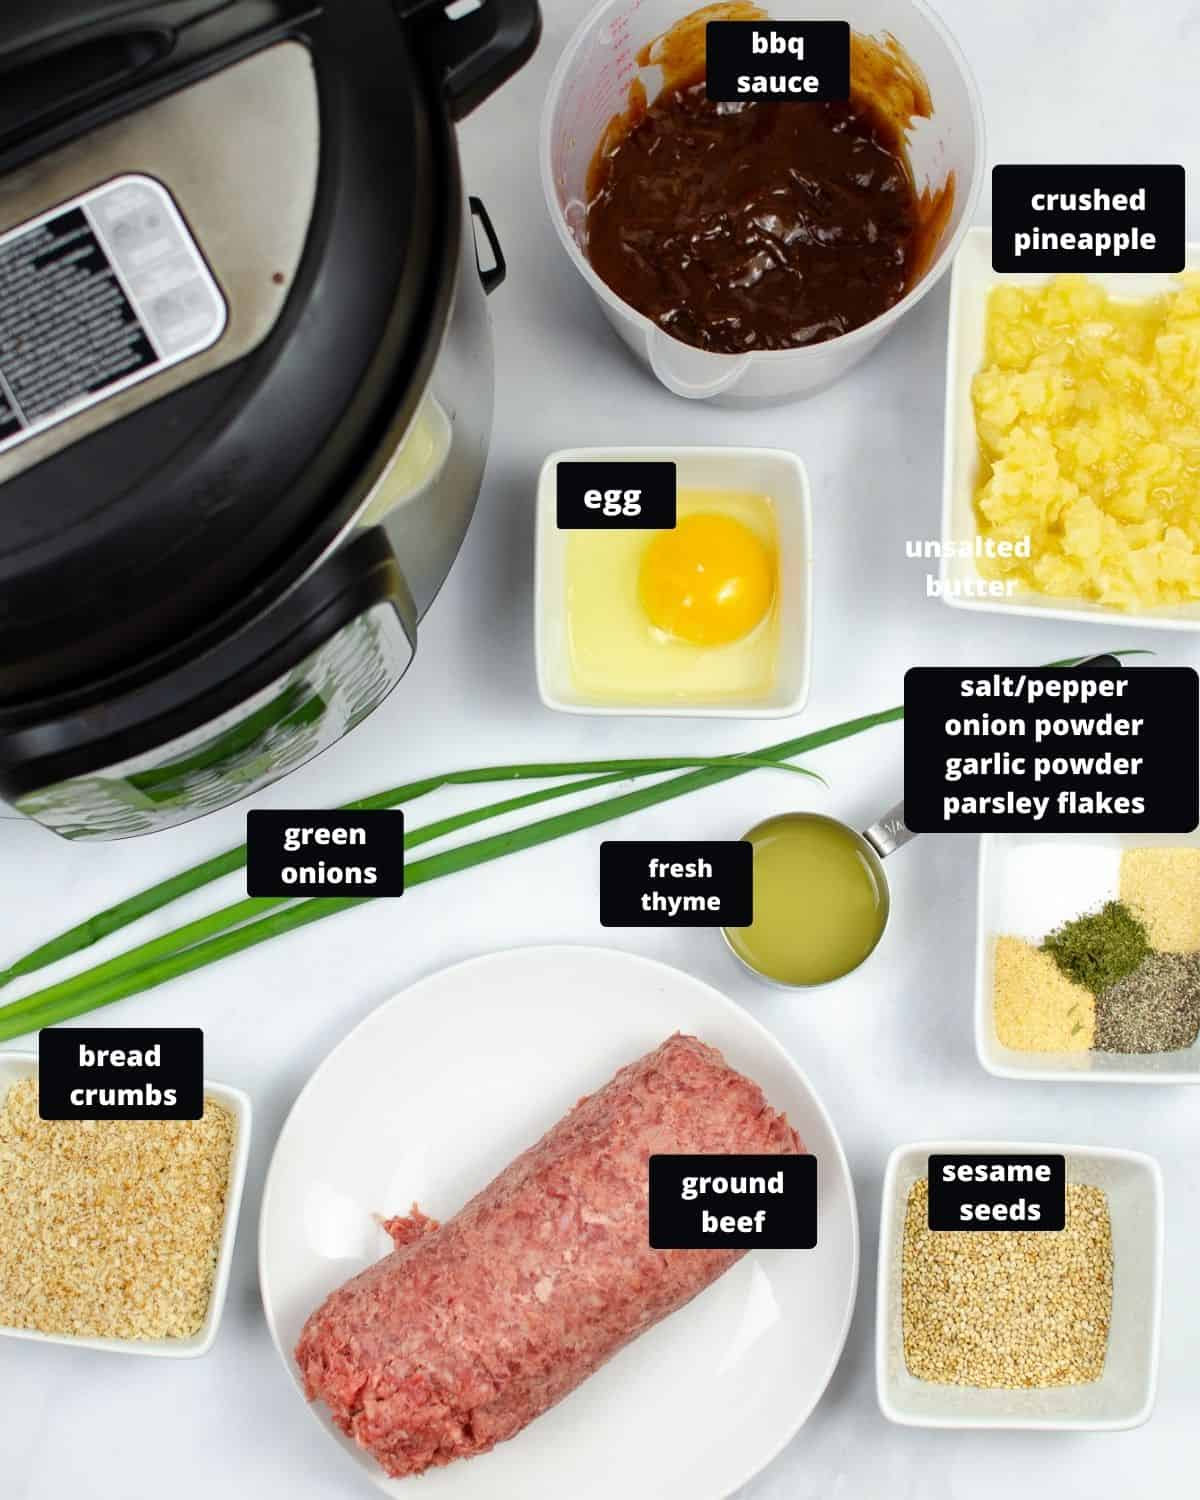 The ingredients to make hawaiian meatballs on a white plate